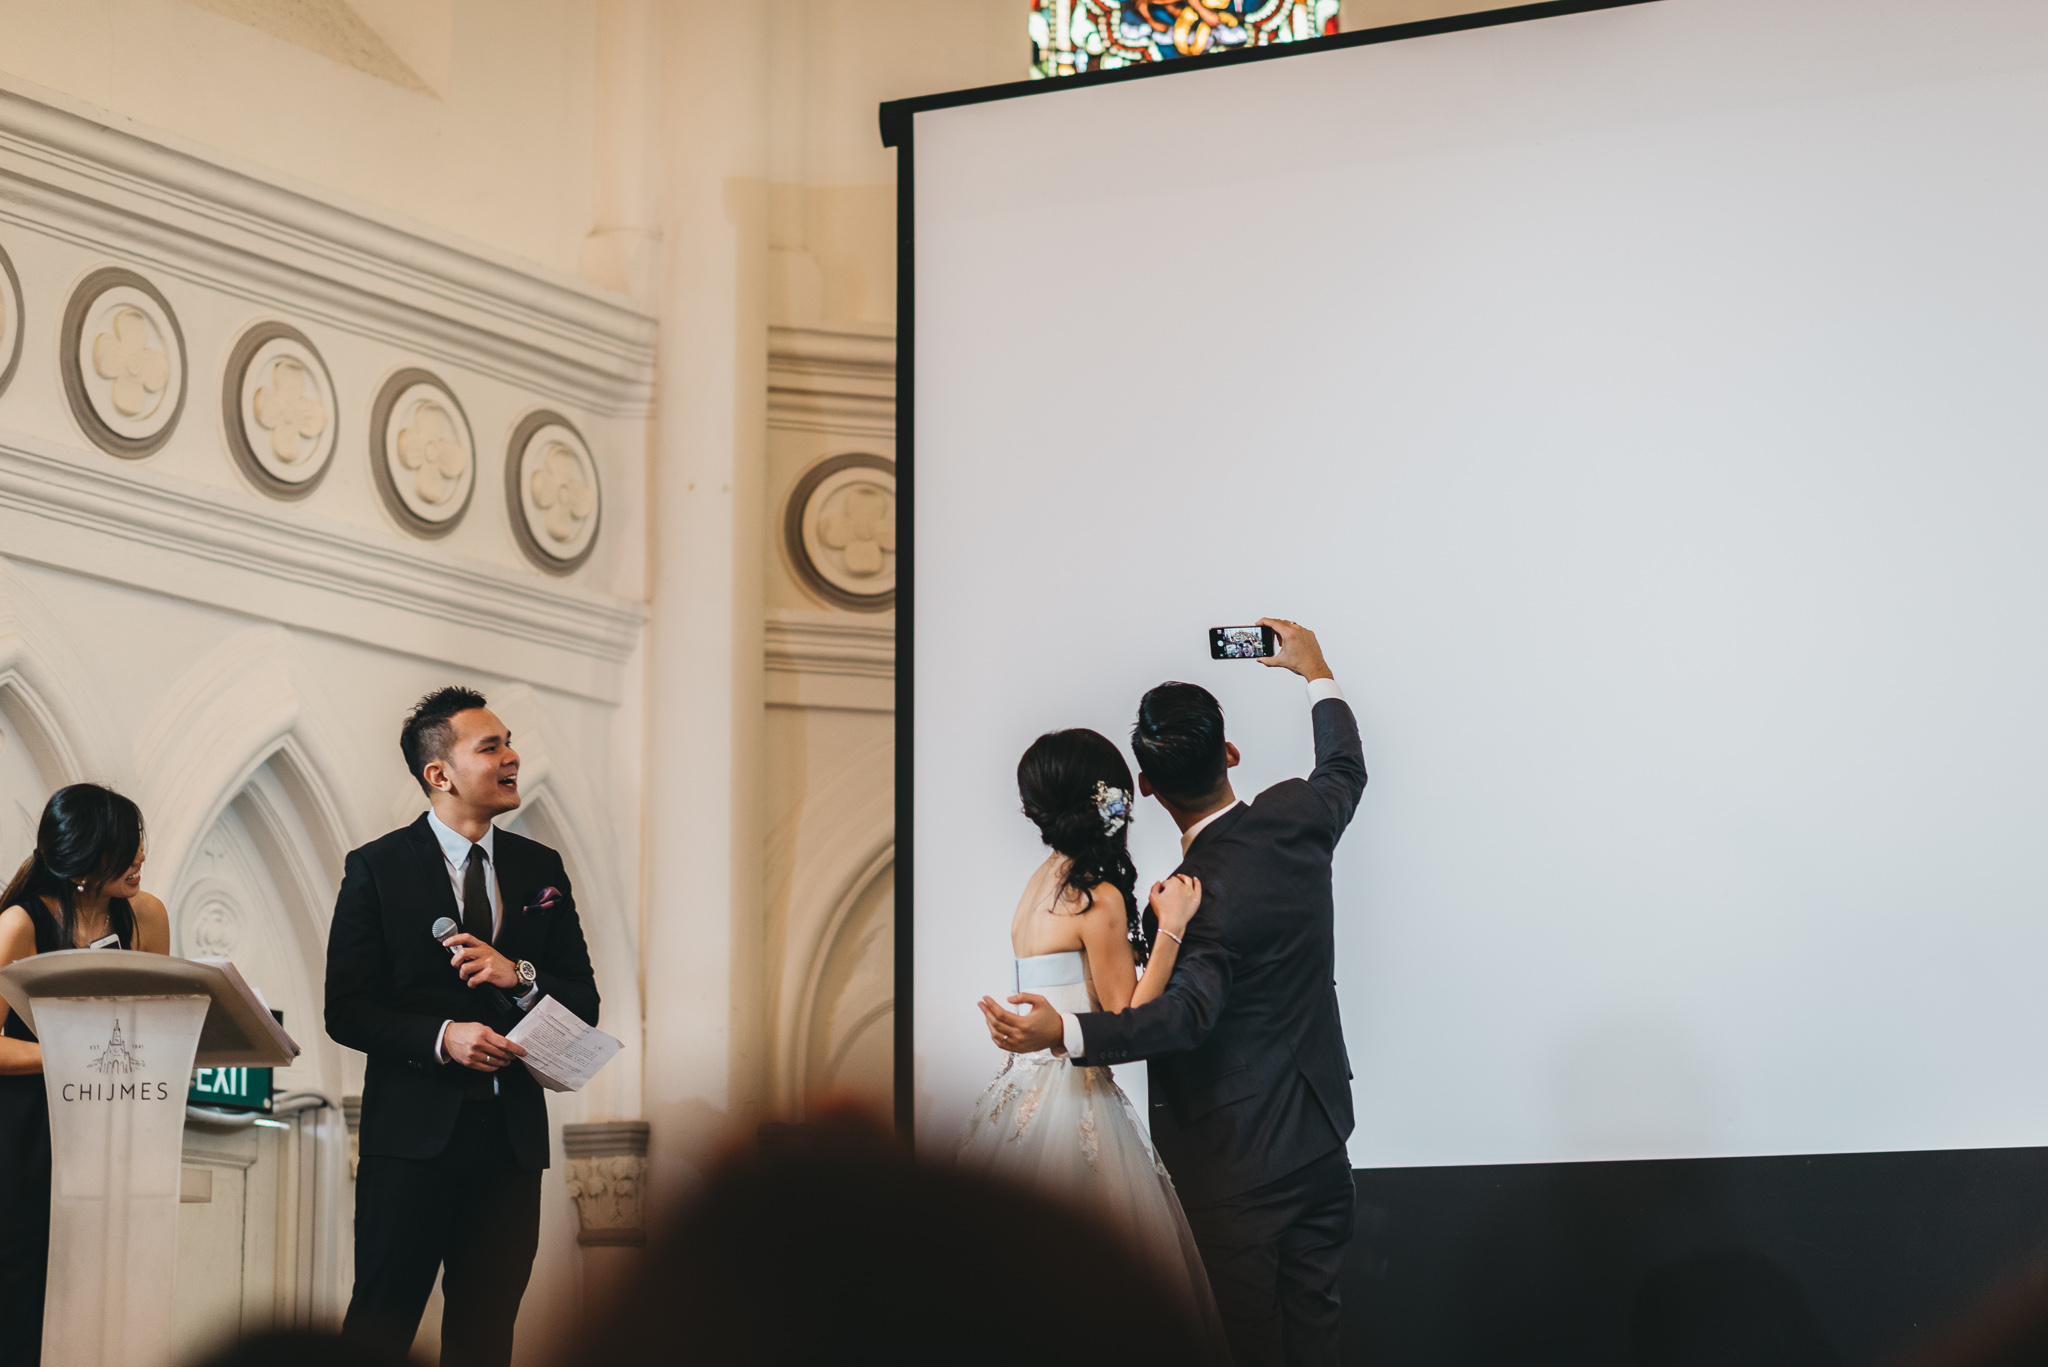 Alice & Wei Bang Wedding Day Highlights (resized for sharing) - 117.jpg